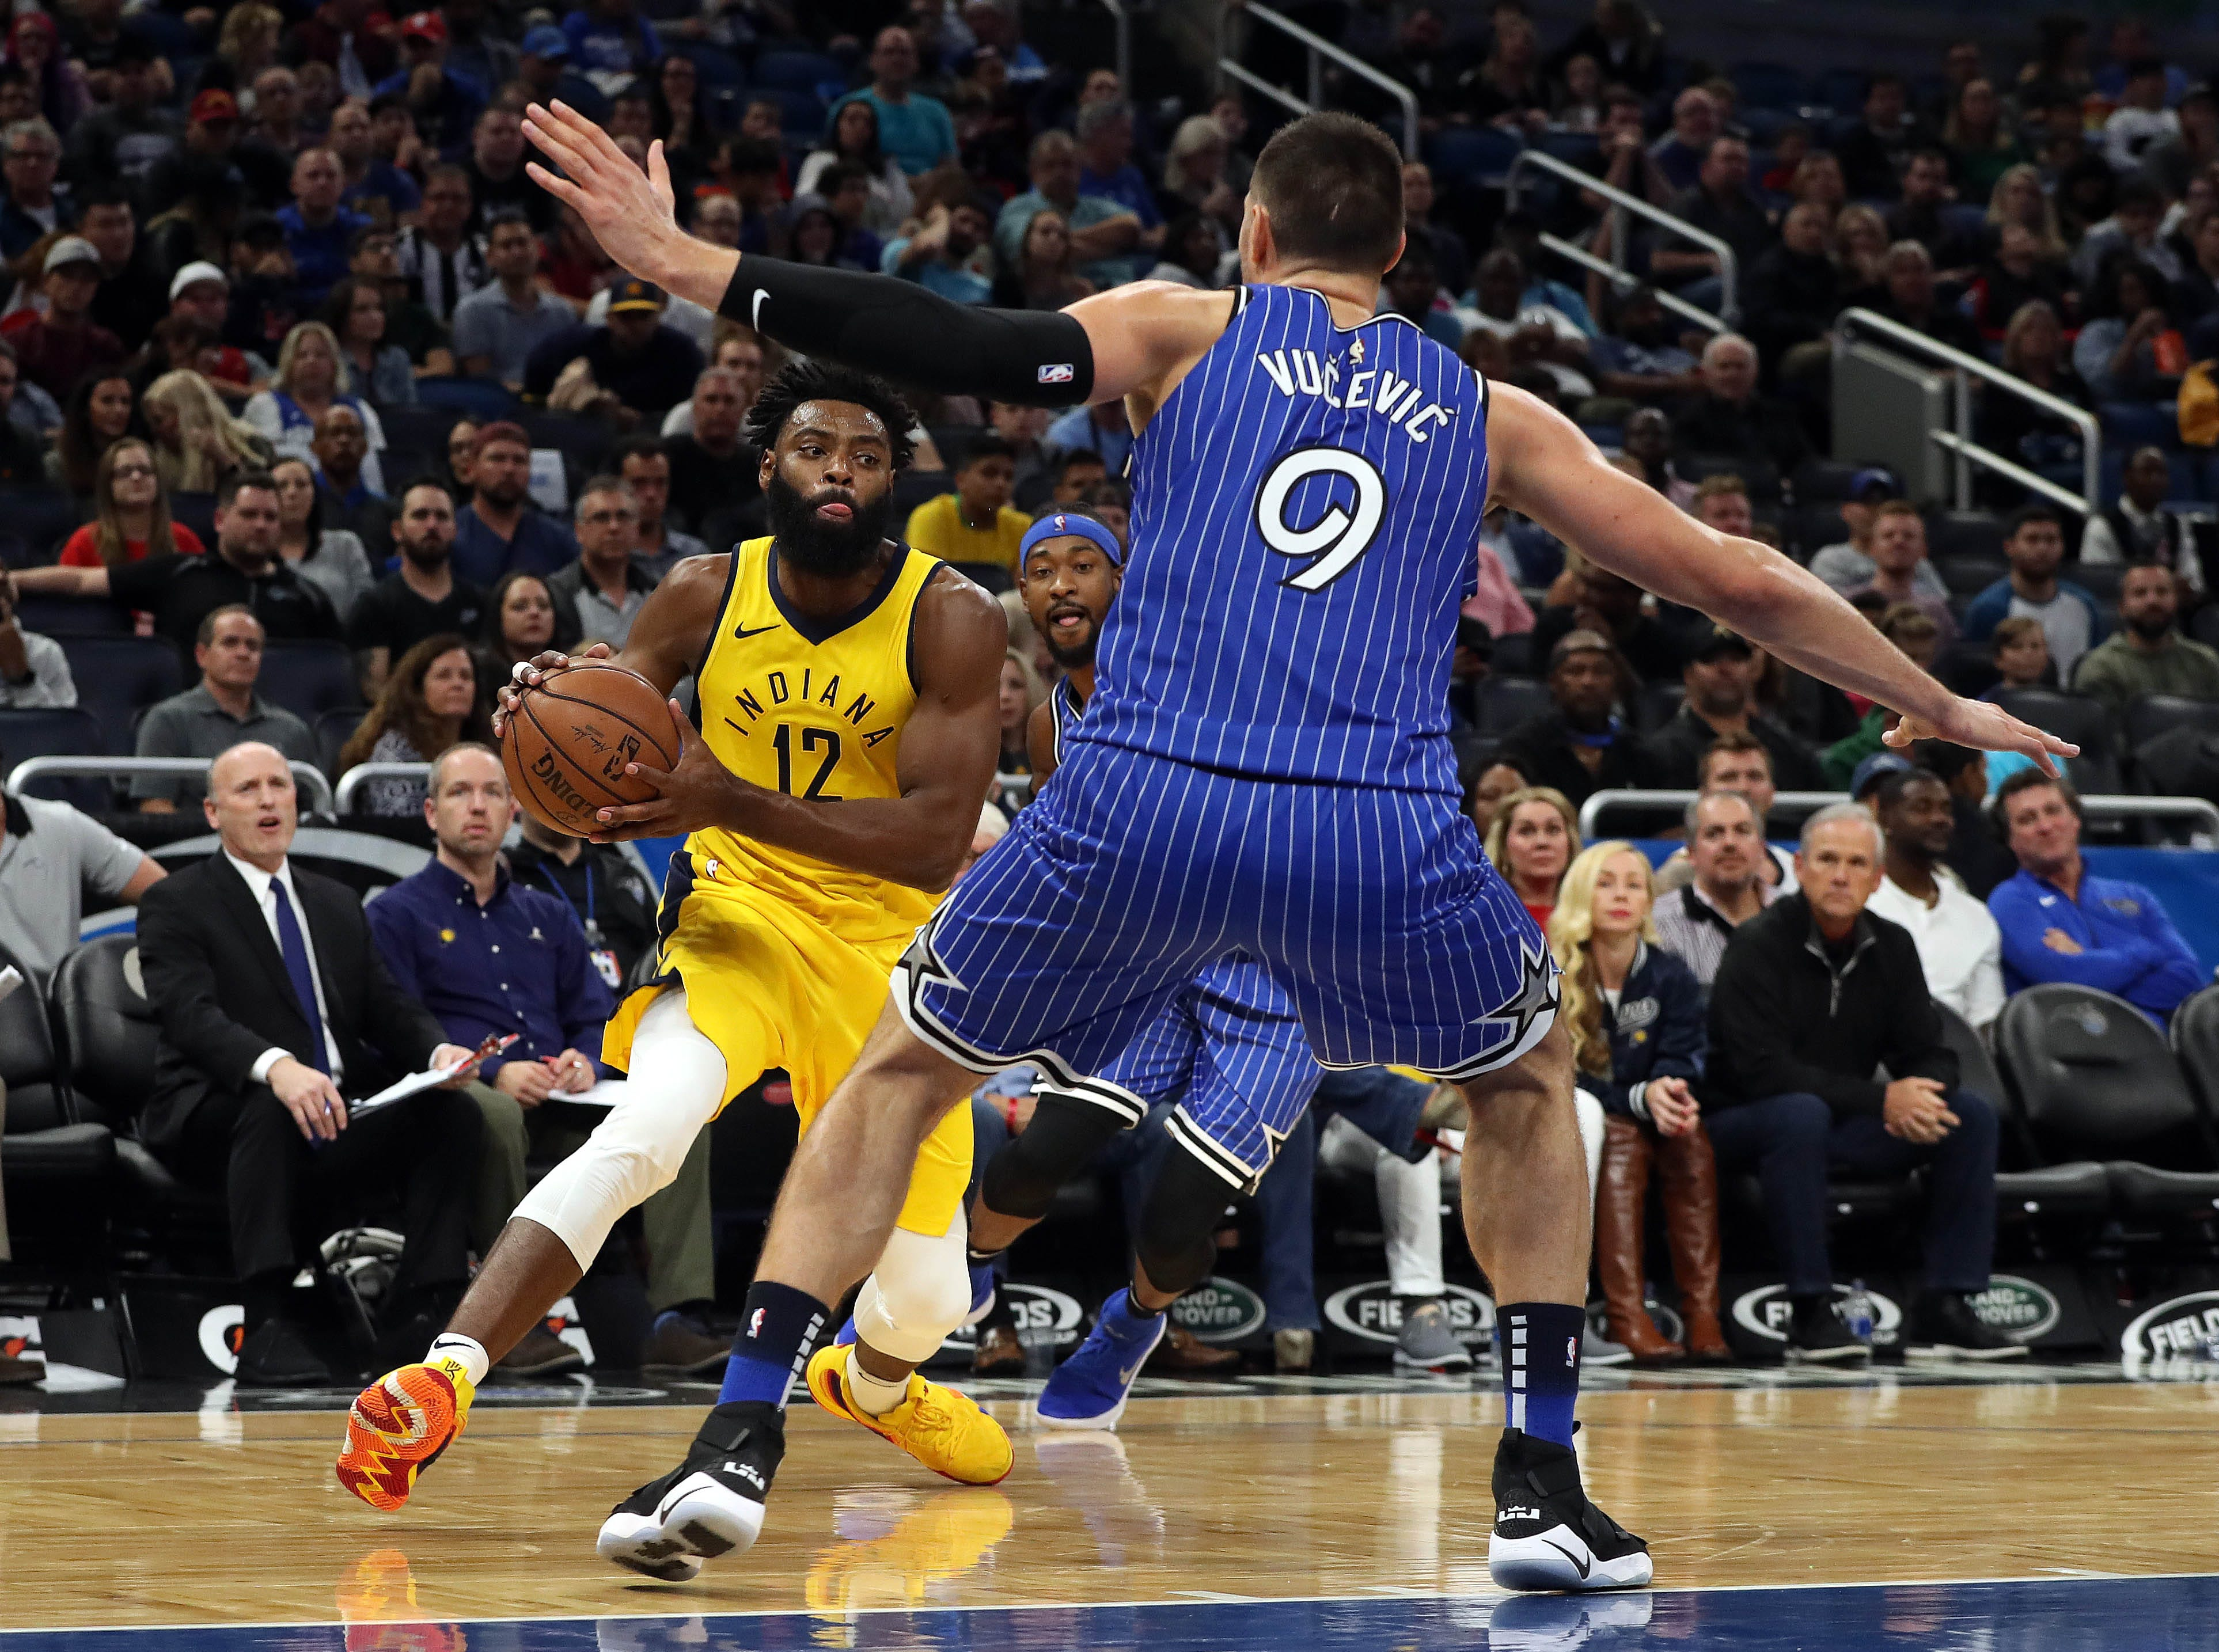 Dec 7, 2018; Orlando, FL, USA; Indiana Pacers guard Tyreke Evans (12) drives to the basket as Orlando Magic center Nikola Vucevic (9) defends during the second quarter at Amway Center. Mandatory Credit: Kim Klement-USA TODAY Sports